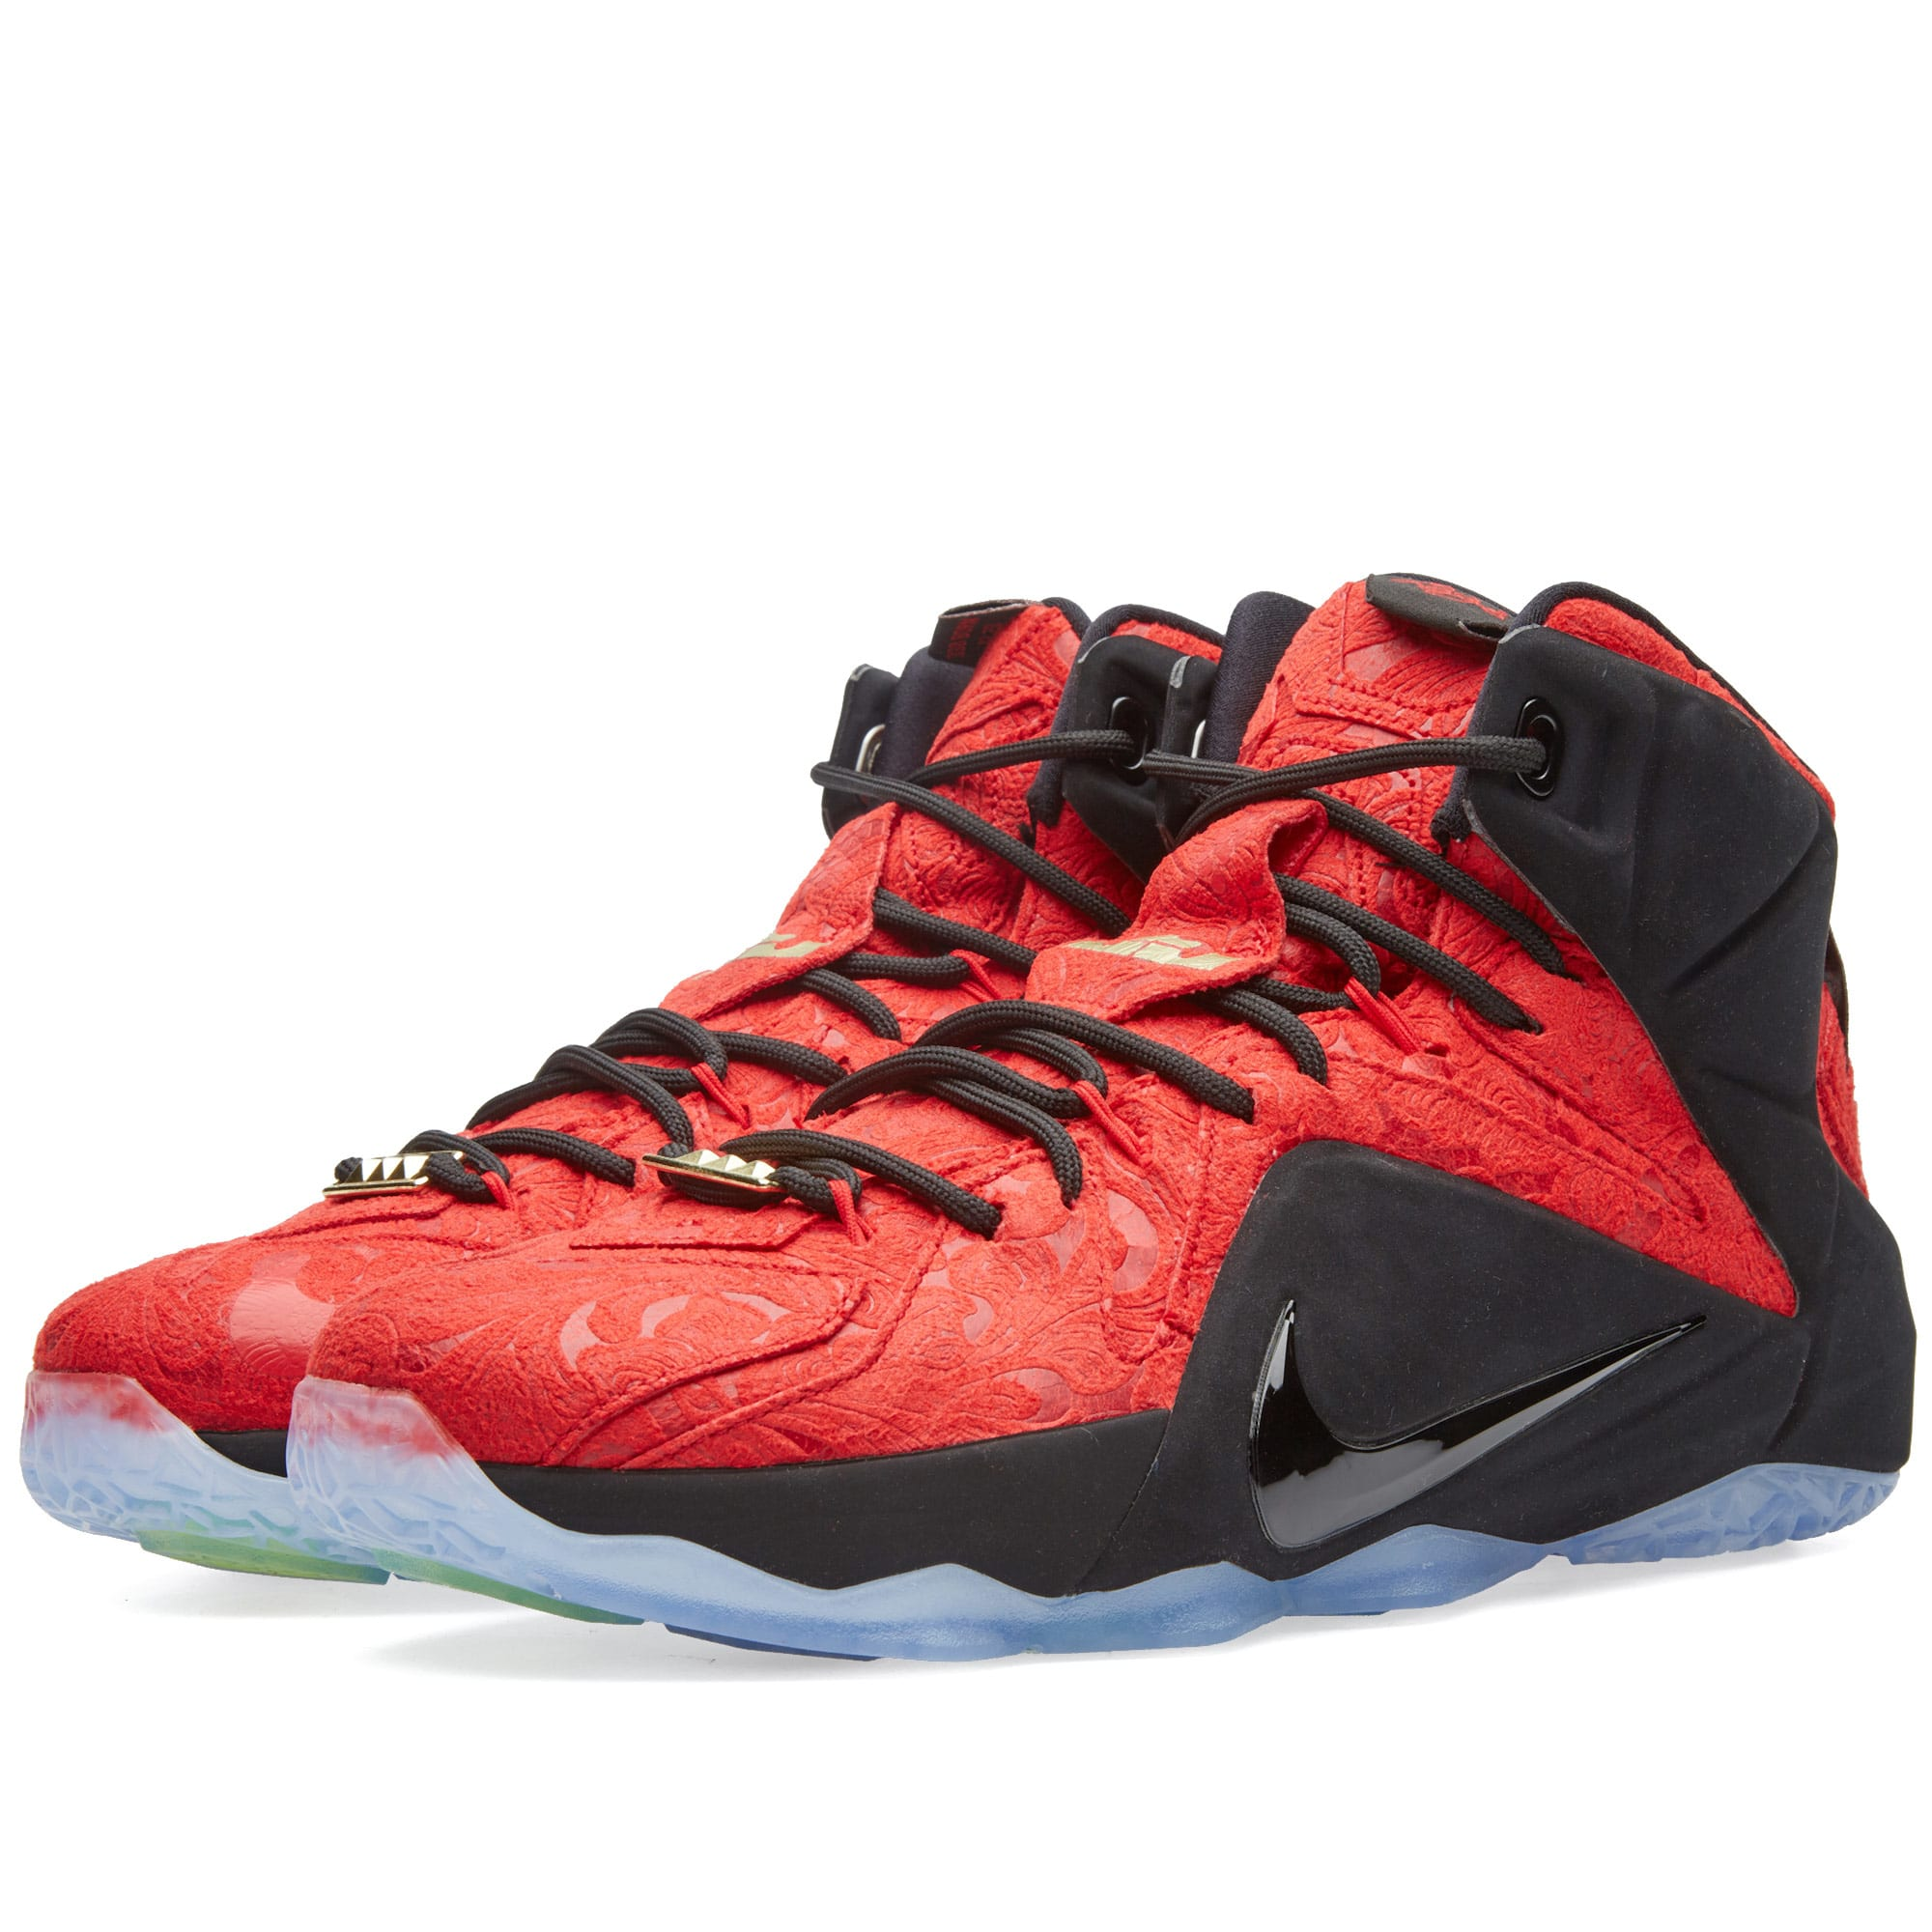 sale retailer d077c 71bcc Nike LeBron XII EXT  Red Paisley  University Red   Black   END.